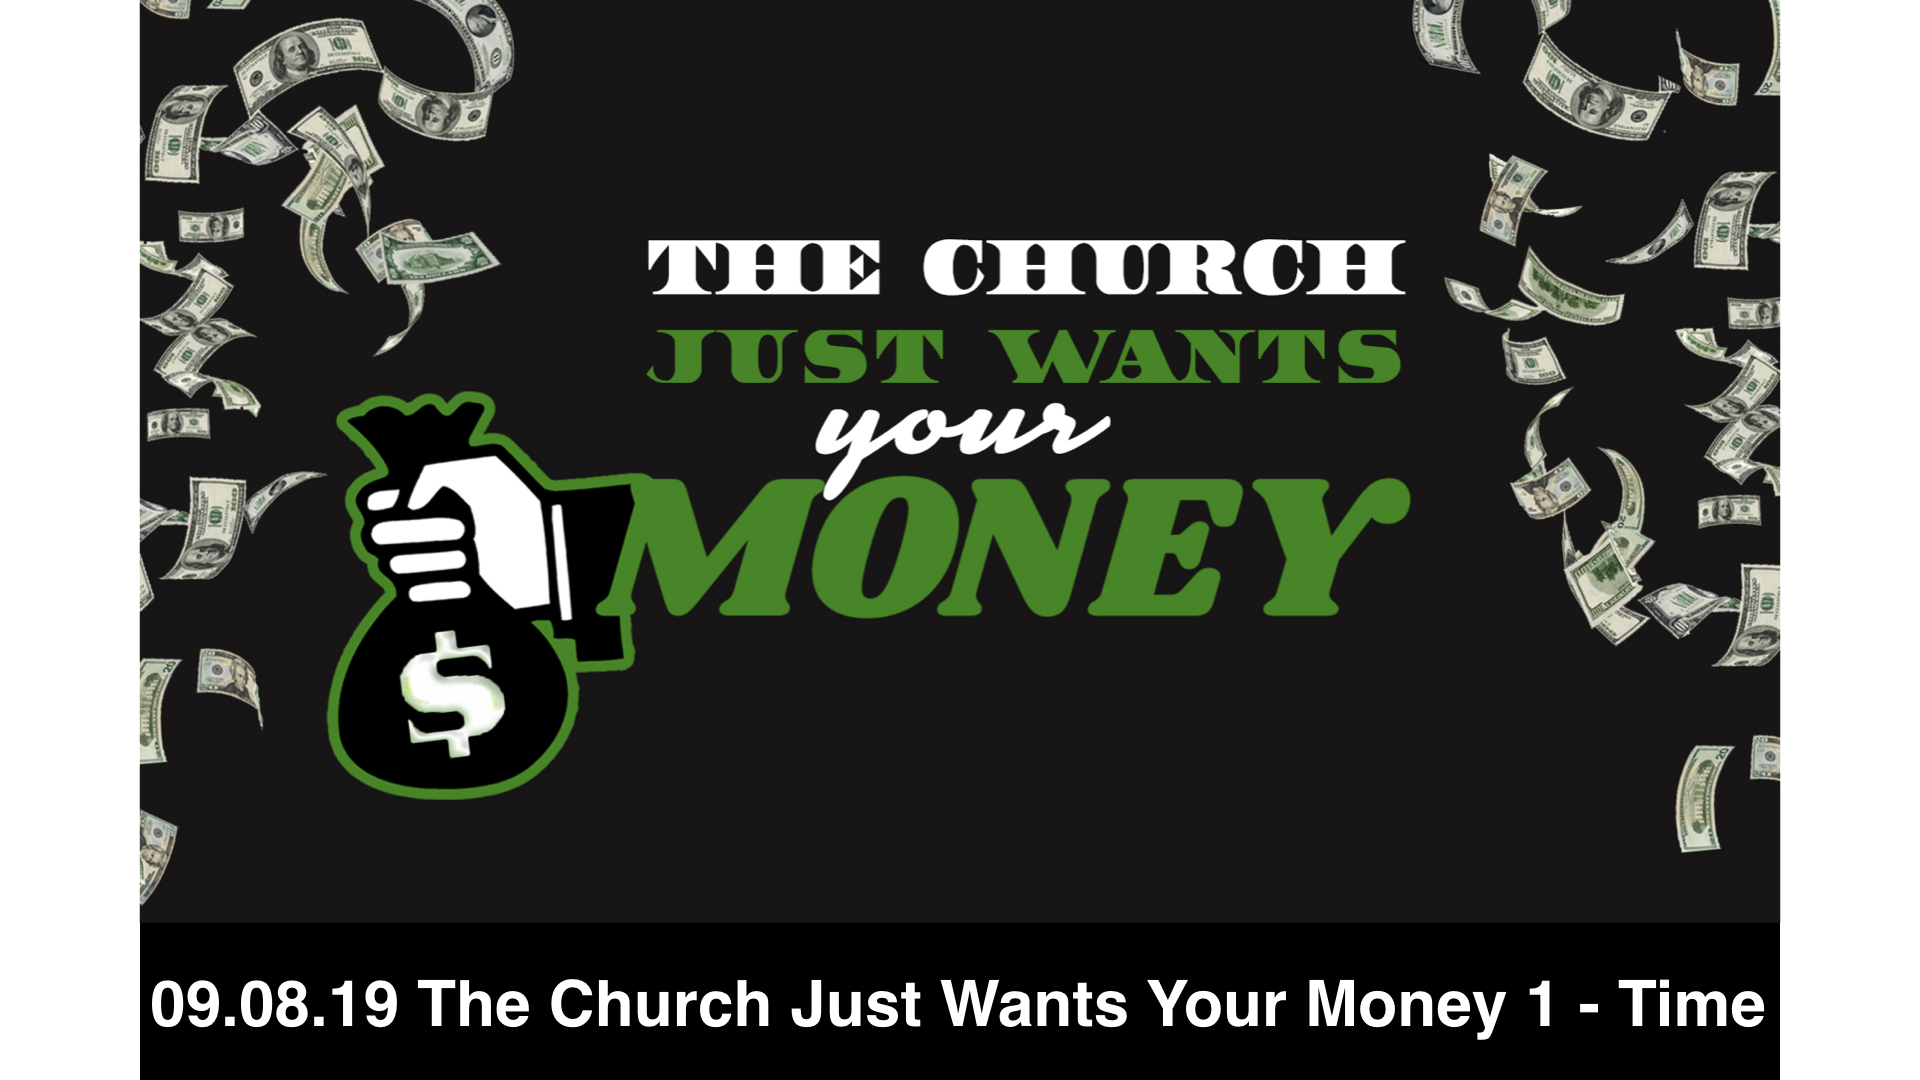 09.08.19 The Church Just Wants Your Money 1 - Time